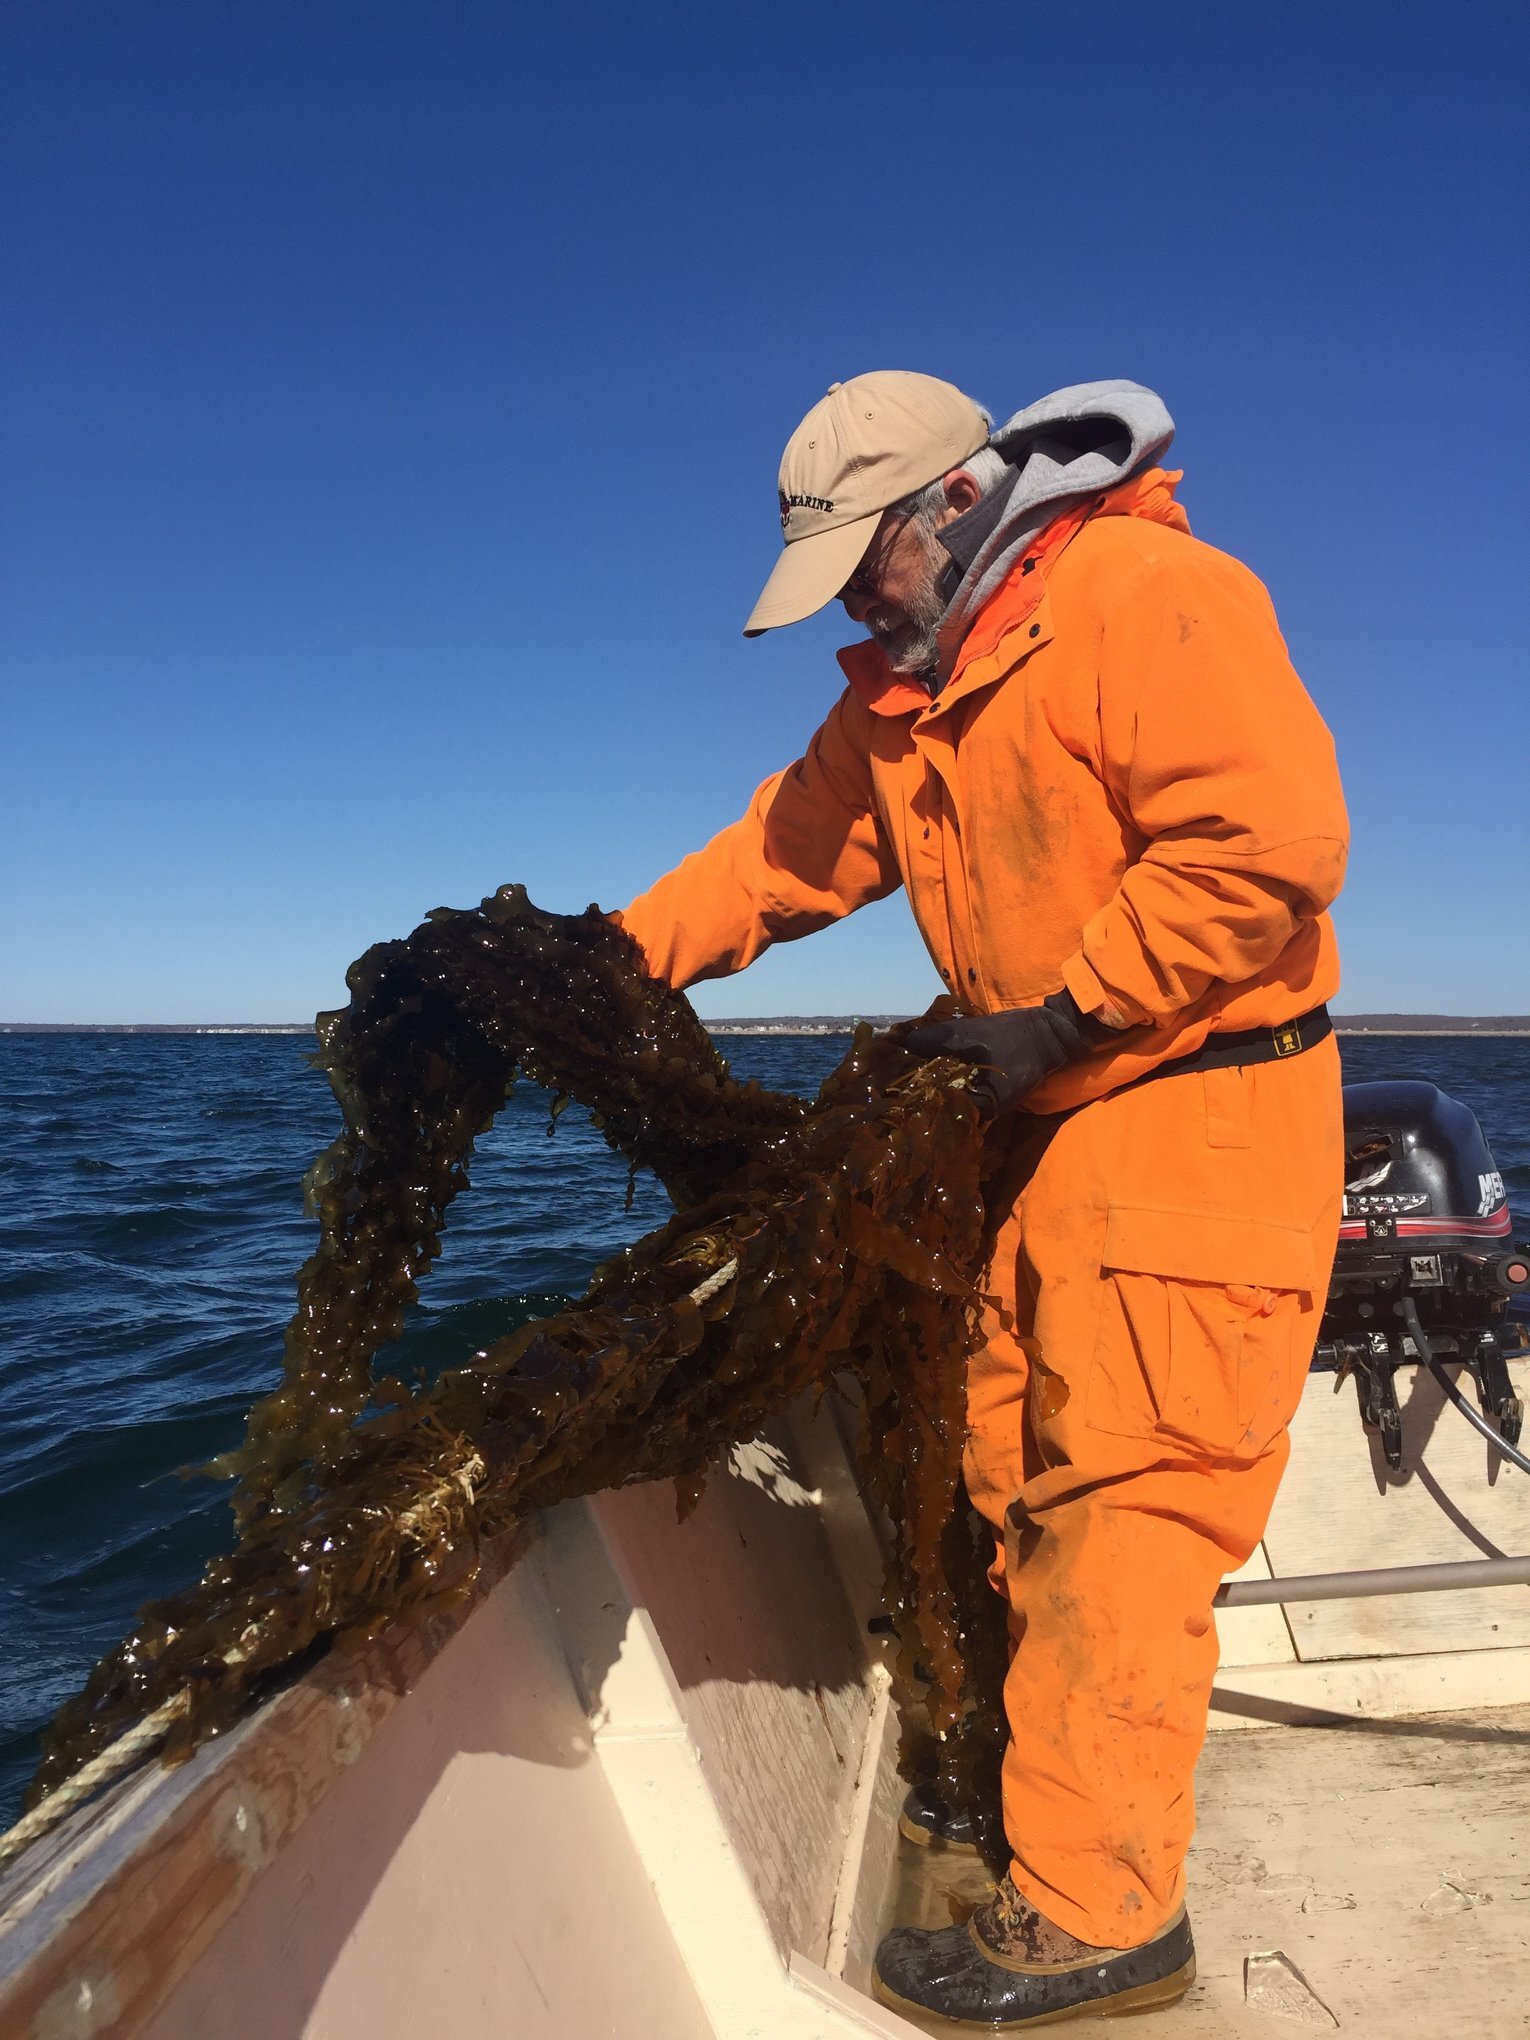 Captain Blaney harvesting kelp off the coast of Point Judith, Rhode Island.